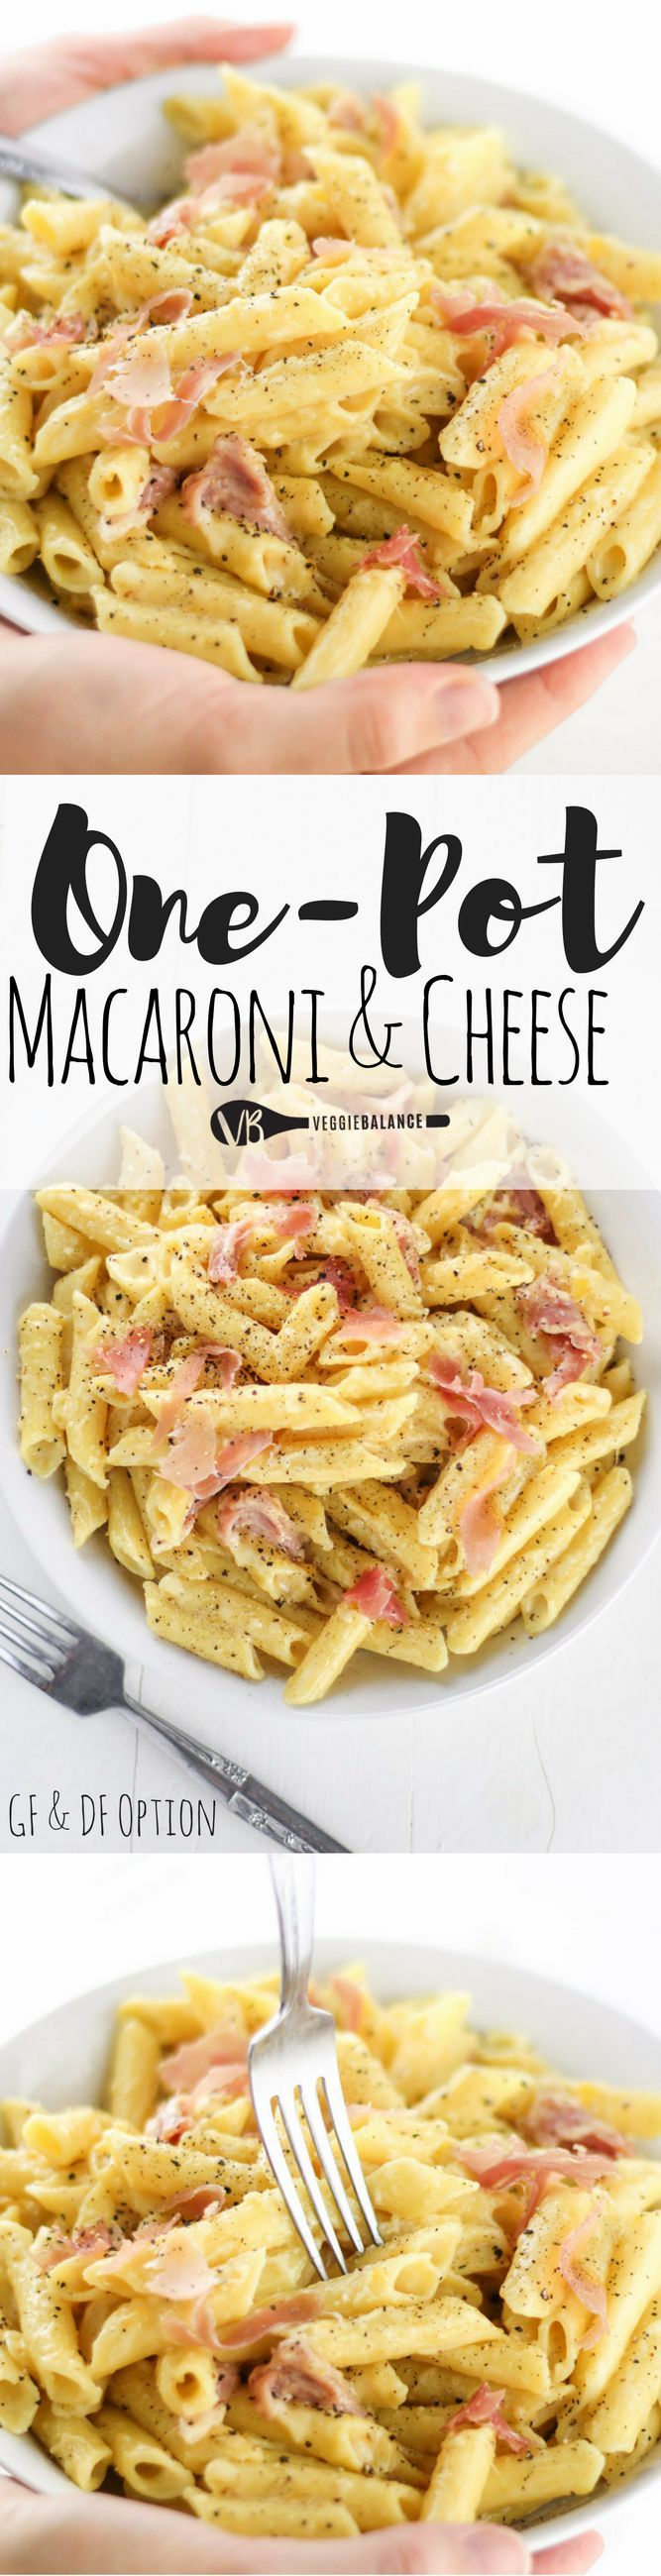 Gluten-Free Macaroni and Cheese made in one pot in less than 30 minutes. Gooey and creamy macaroni and cheese with prosciutto tossed in makes the best dinner ever.